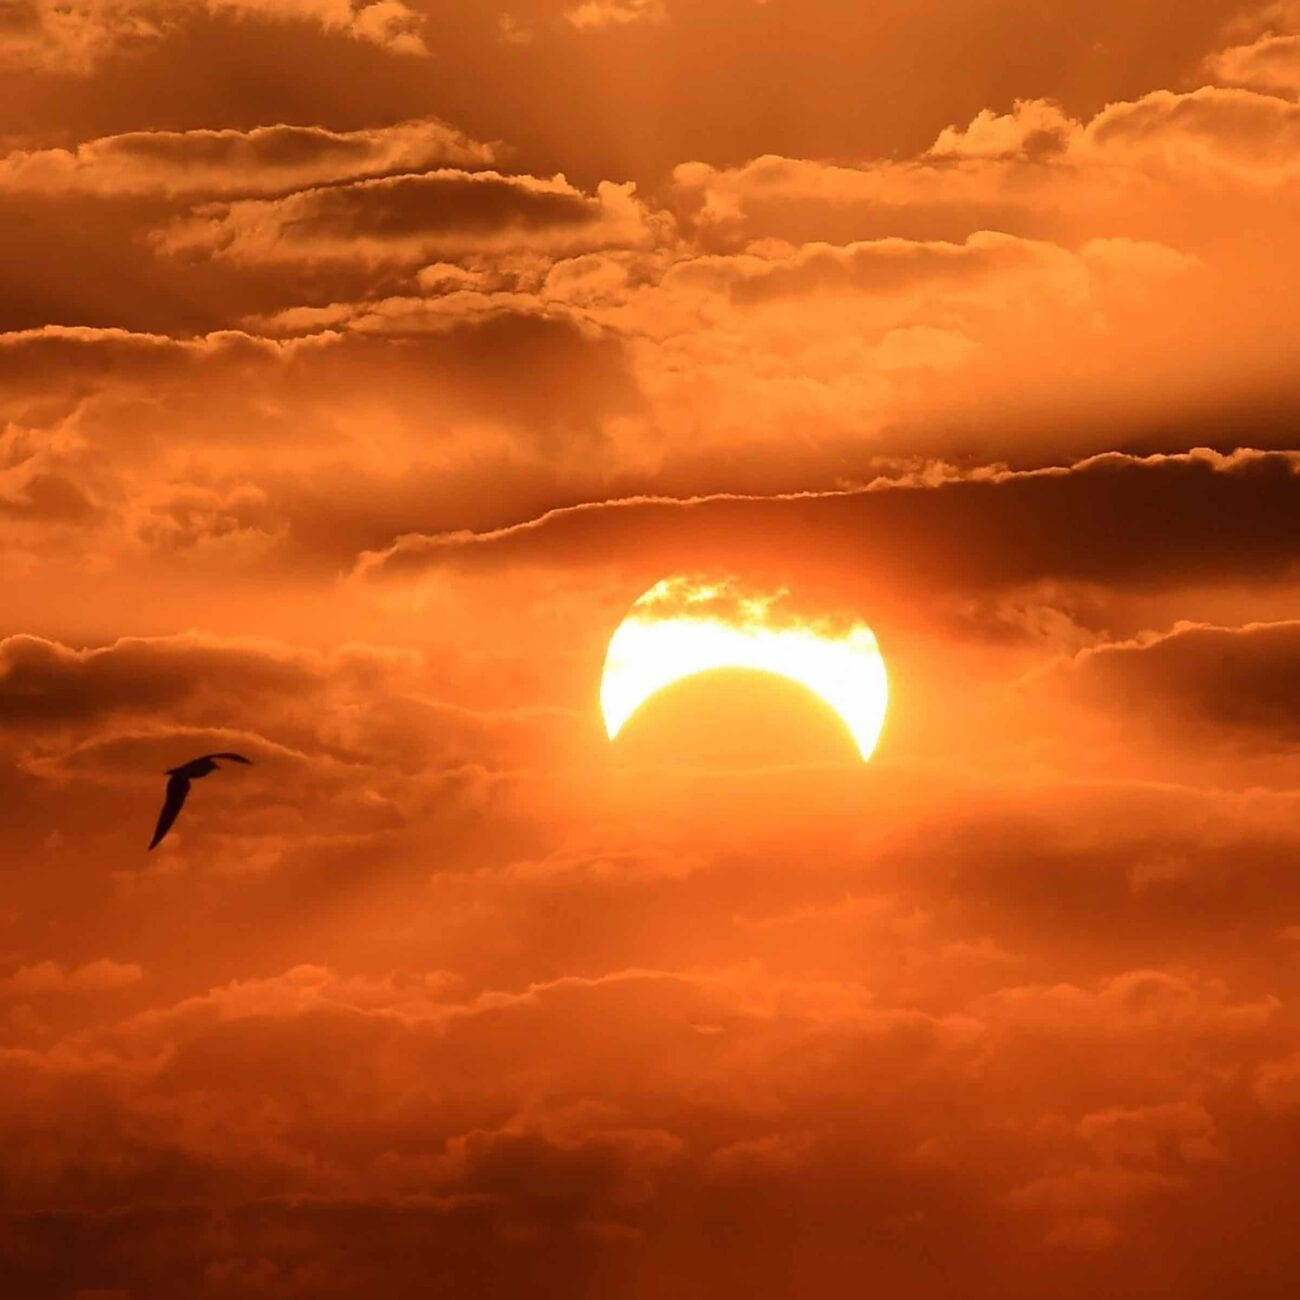 Apparently the Moon liked it, so they put a ring on it! Grab your telescope and dive into these stunning photos of the Ring of Fire solar eclipse.